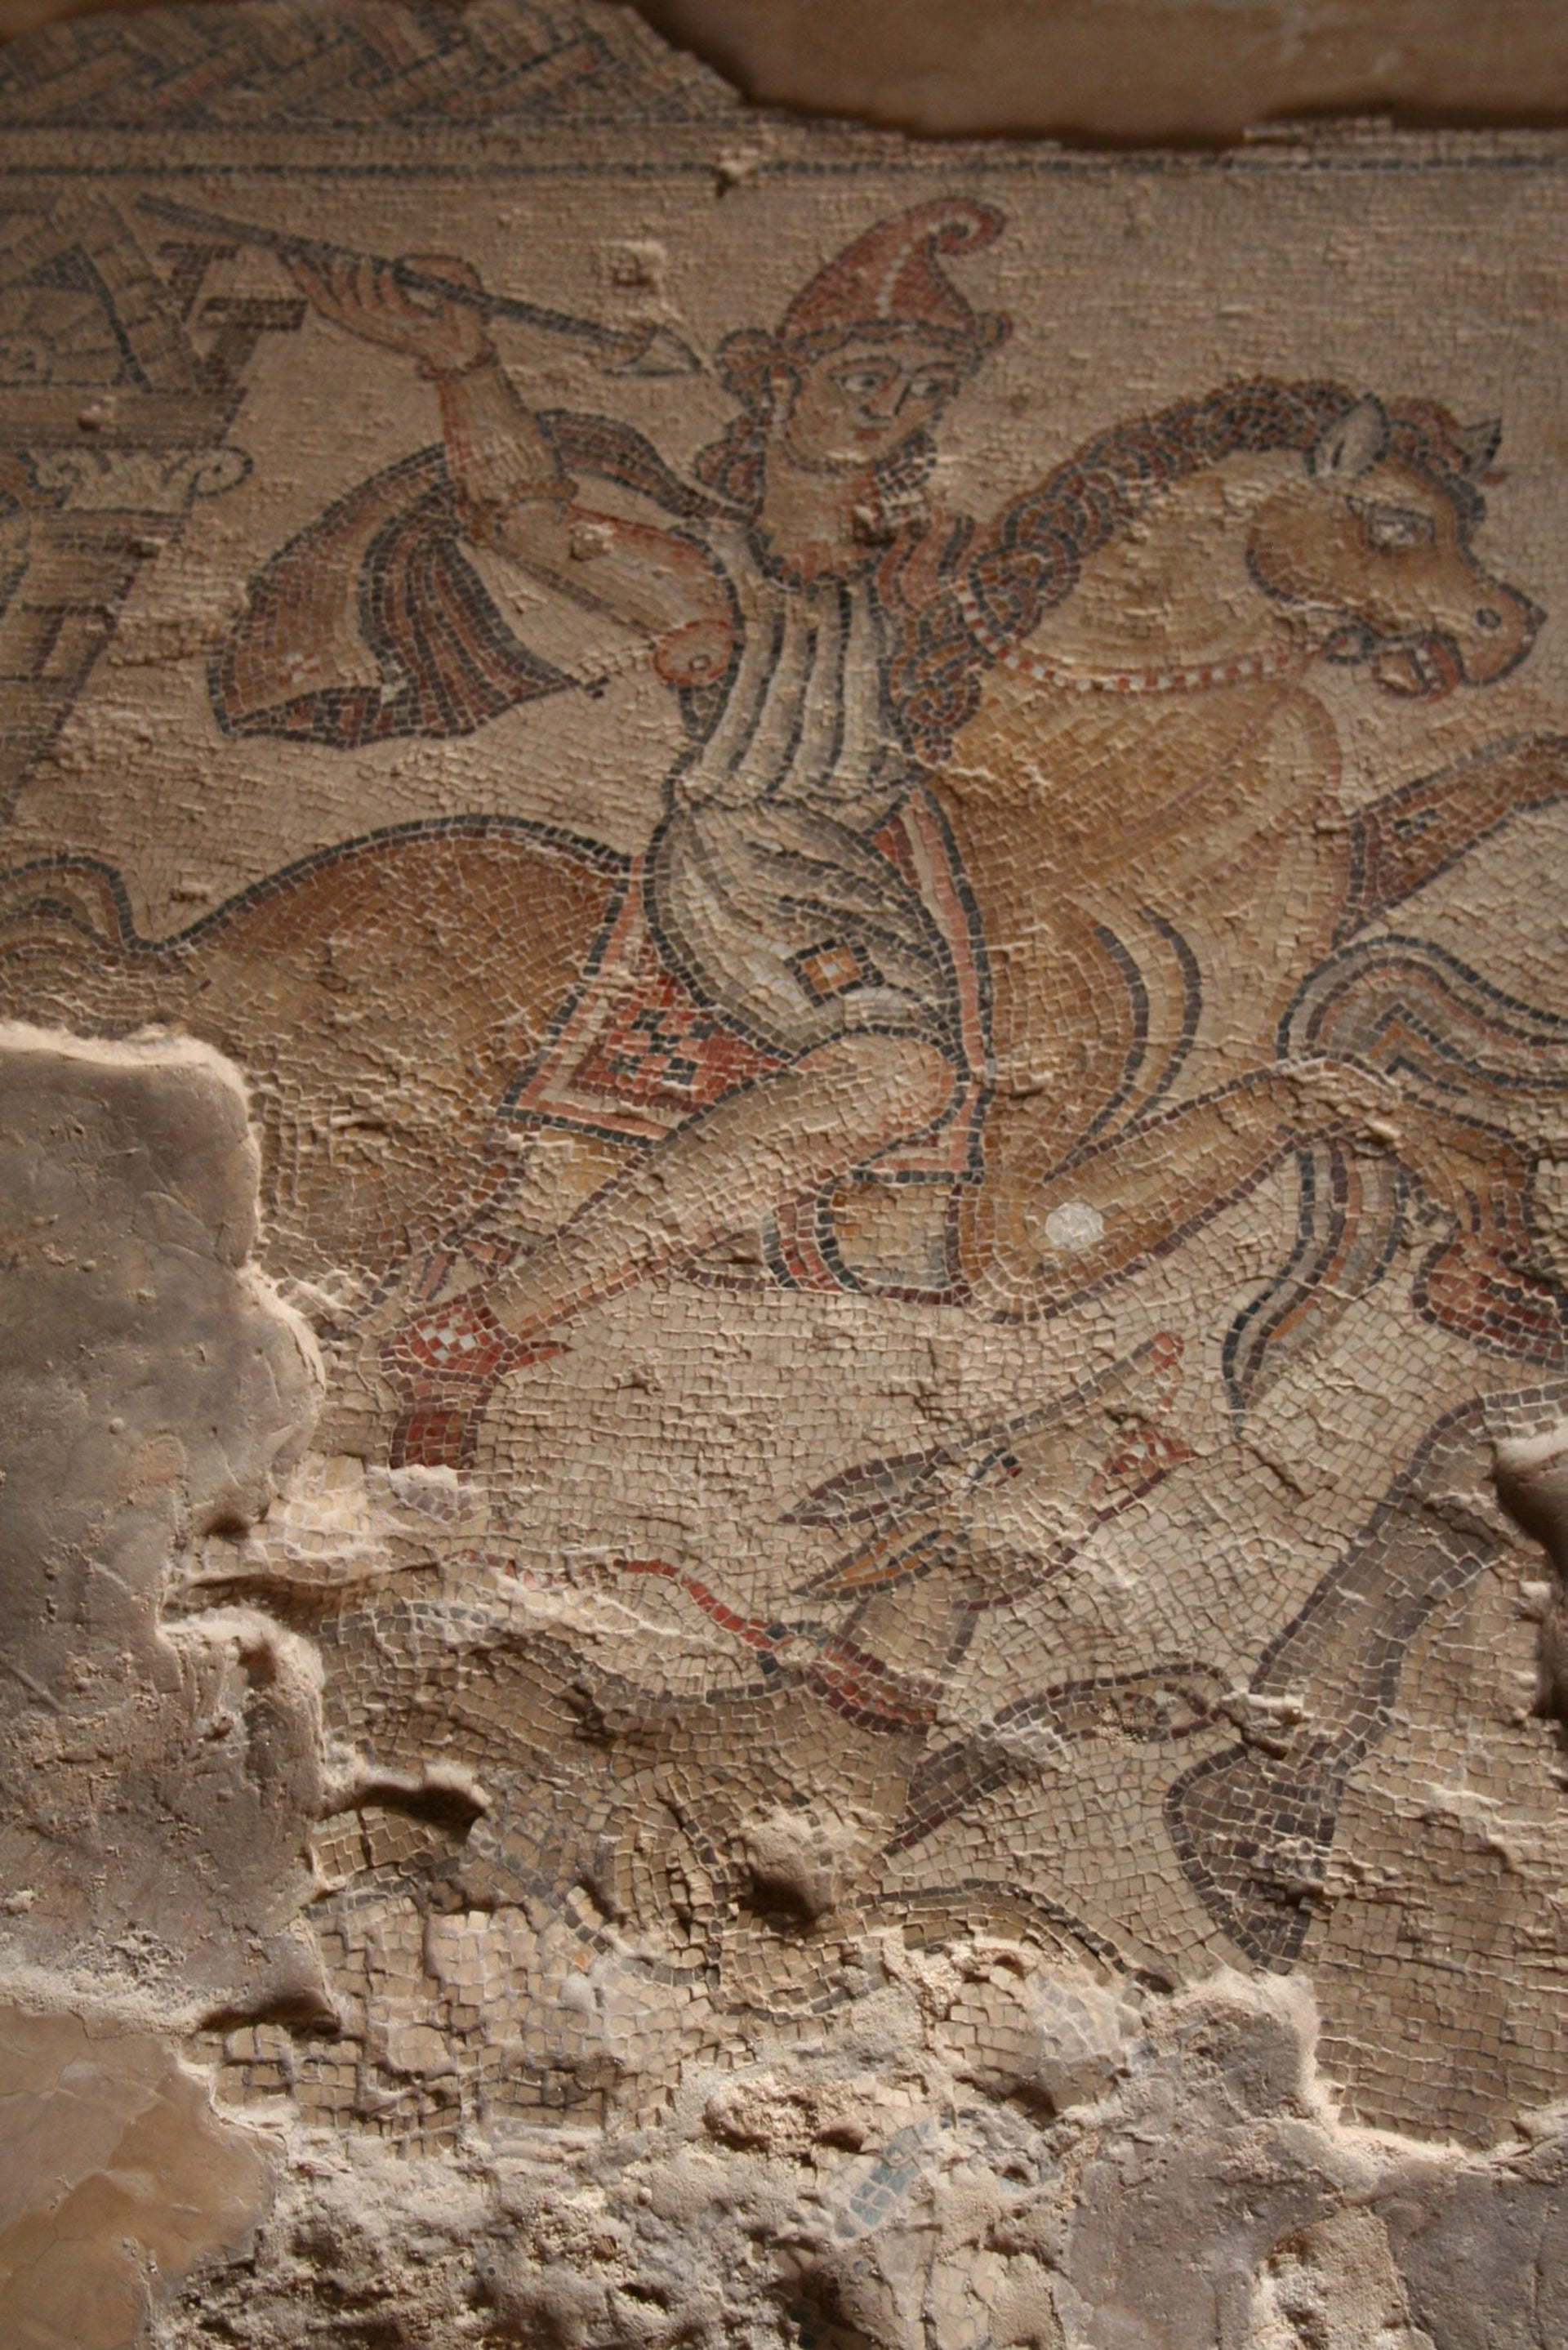 Among the amazing mosaics at Zippori: Photo shows mosaic mage of helmeted warrior on a rearing horse, wearing a toga-type garb and brandishing a spear. Beneath the front leg of the quadruped there seems to be a hunting dog with an elongated snout.